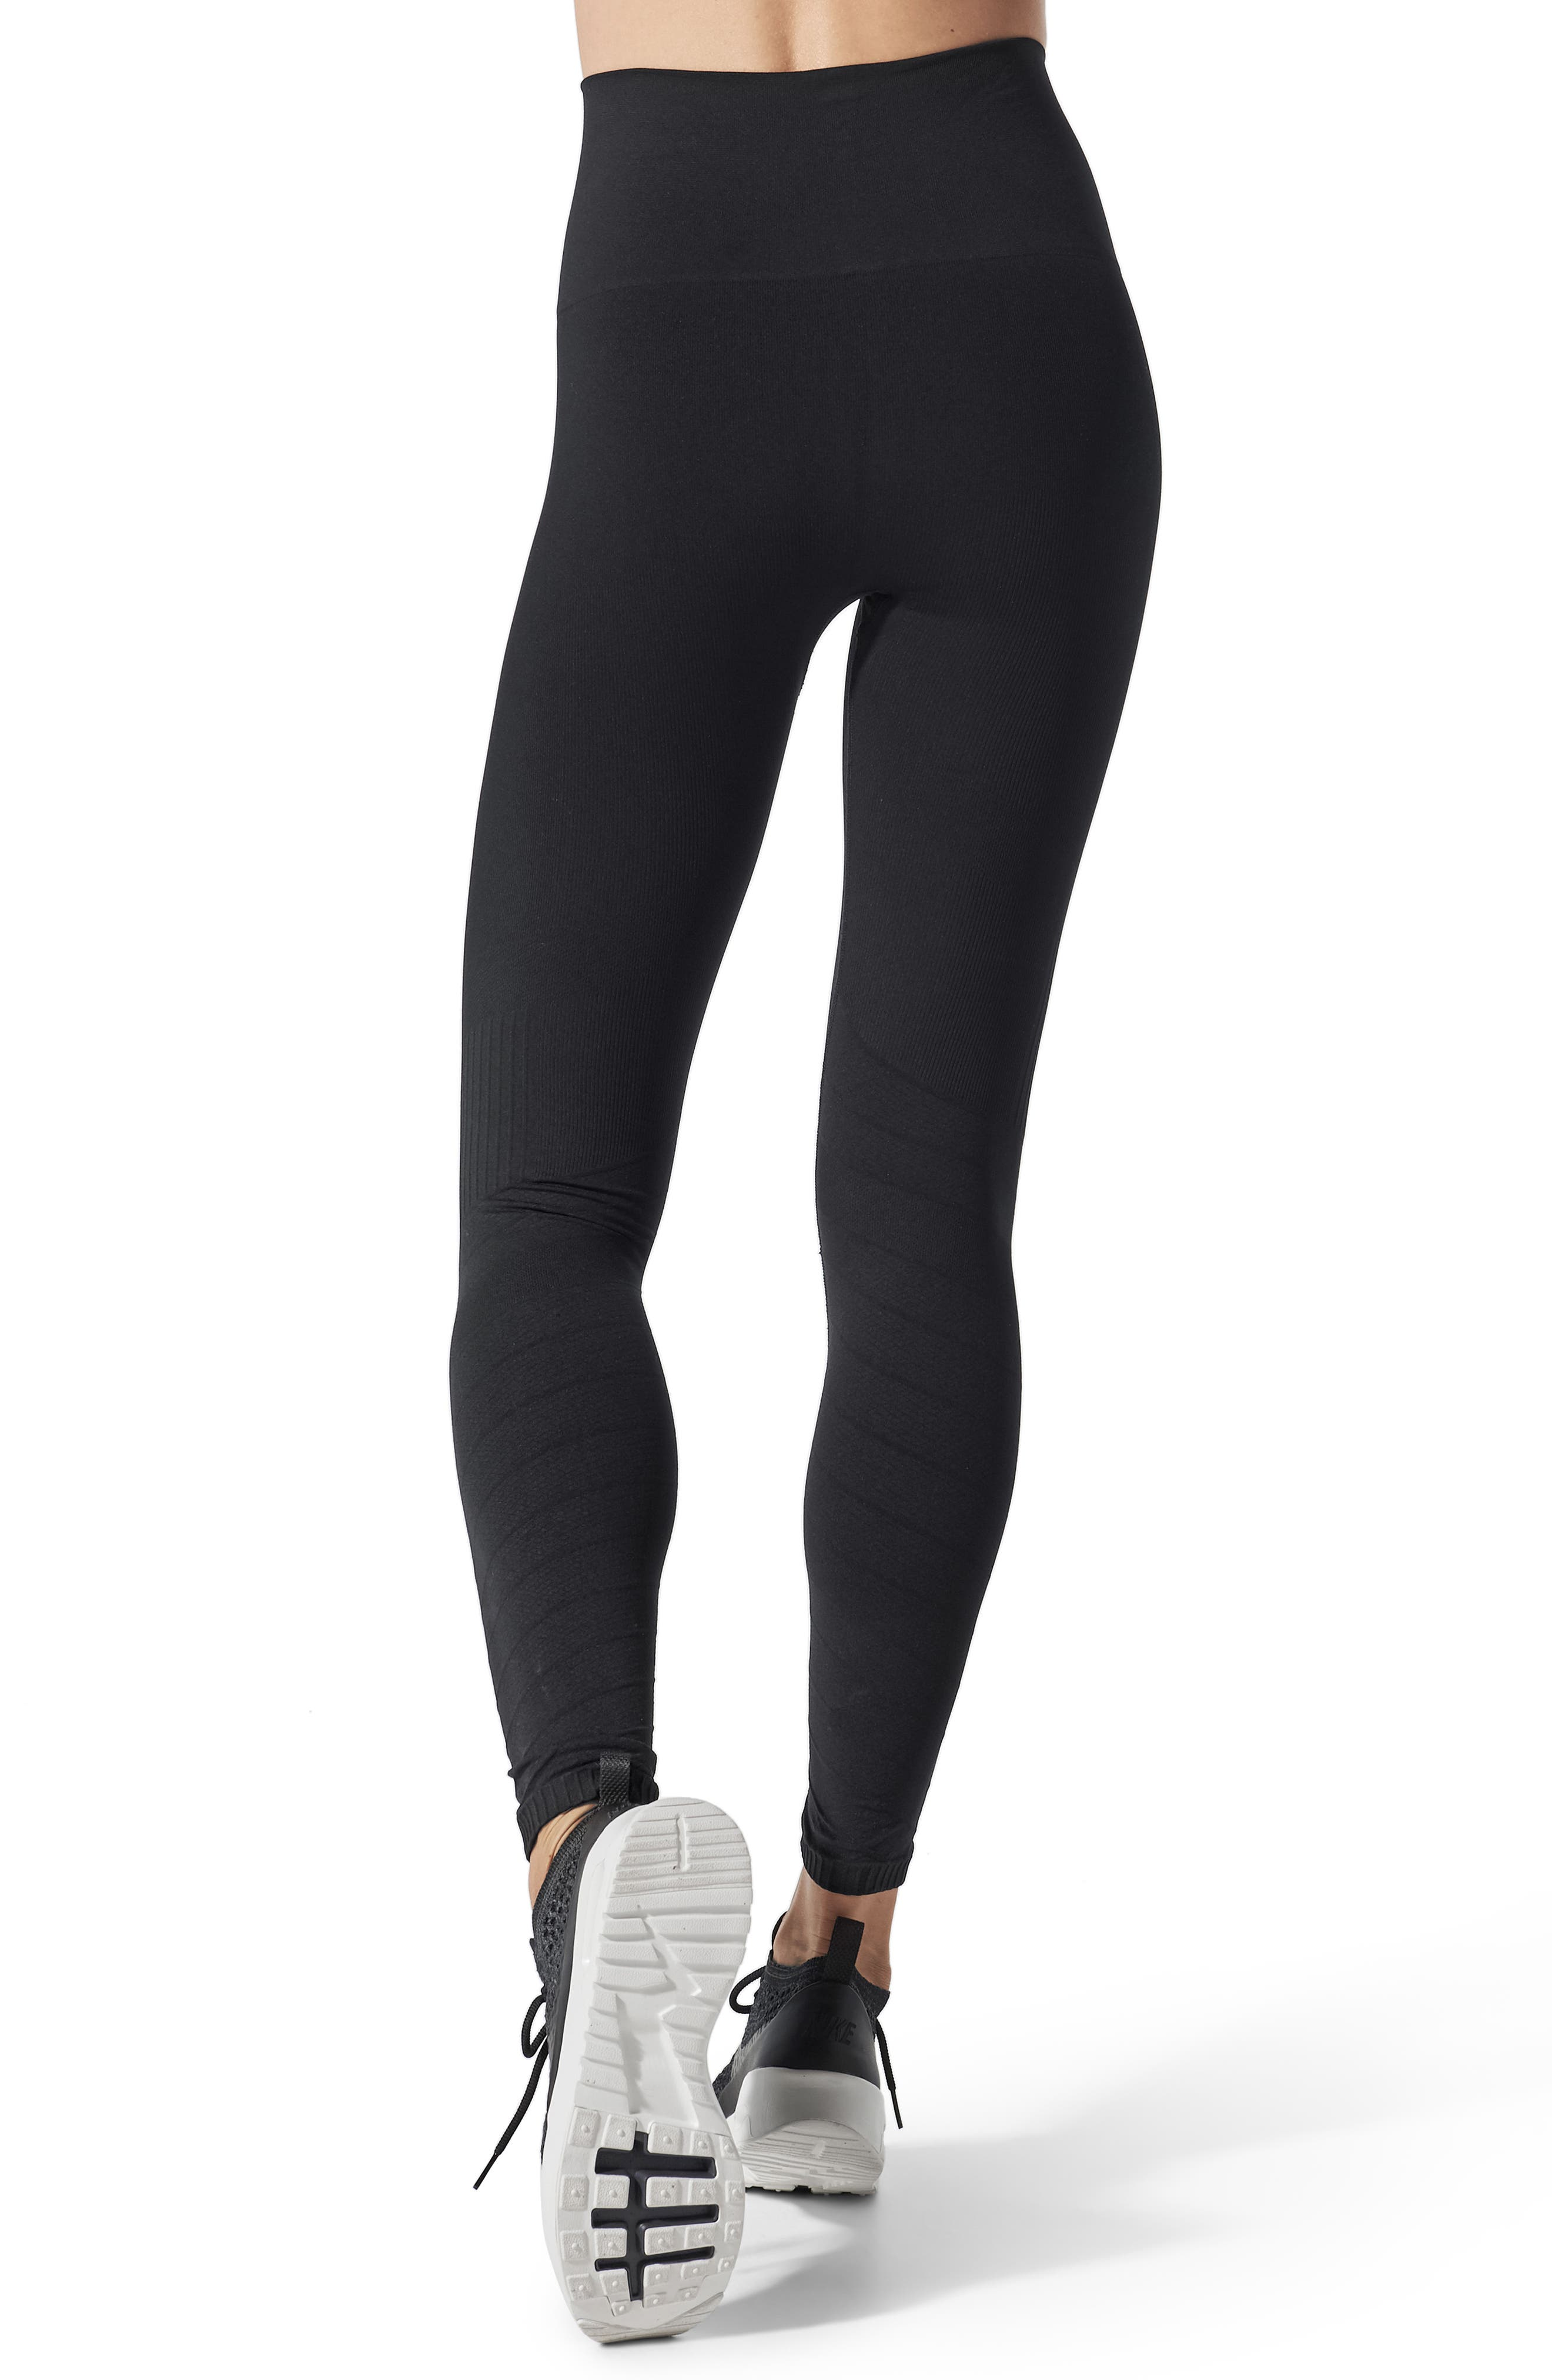 SportSupport<sup>®</sup> Hipster Contour Support Maternity/Postpartum Leggings,                             Alternate thumbnail 2, color,                             BLACK